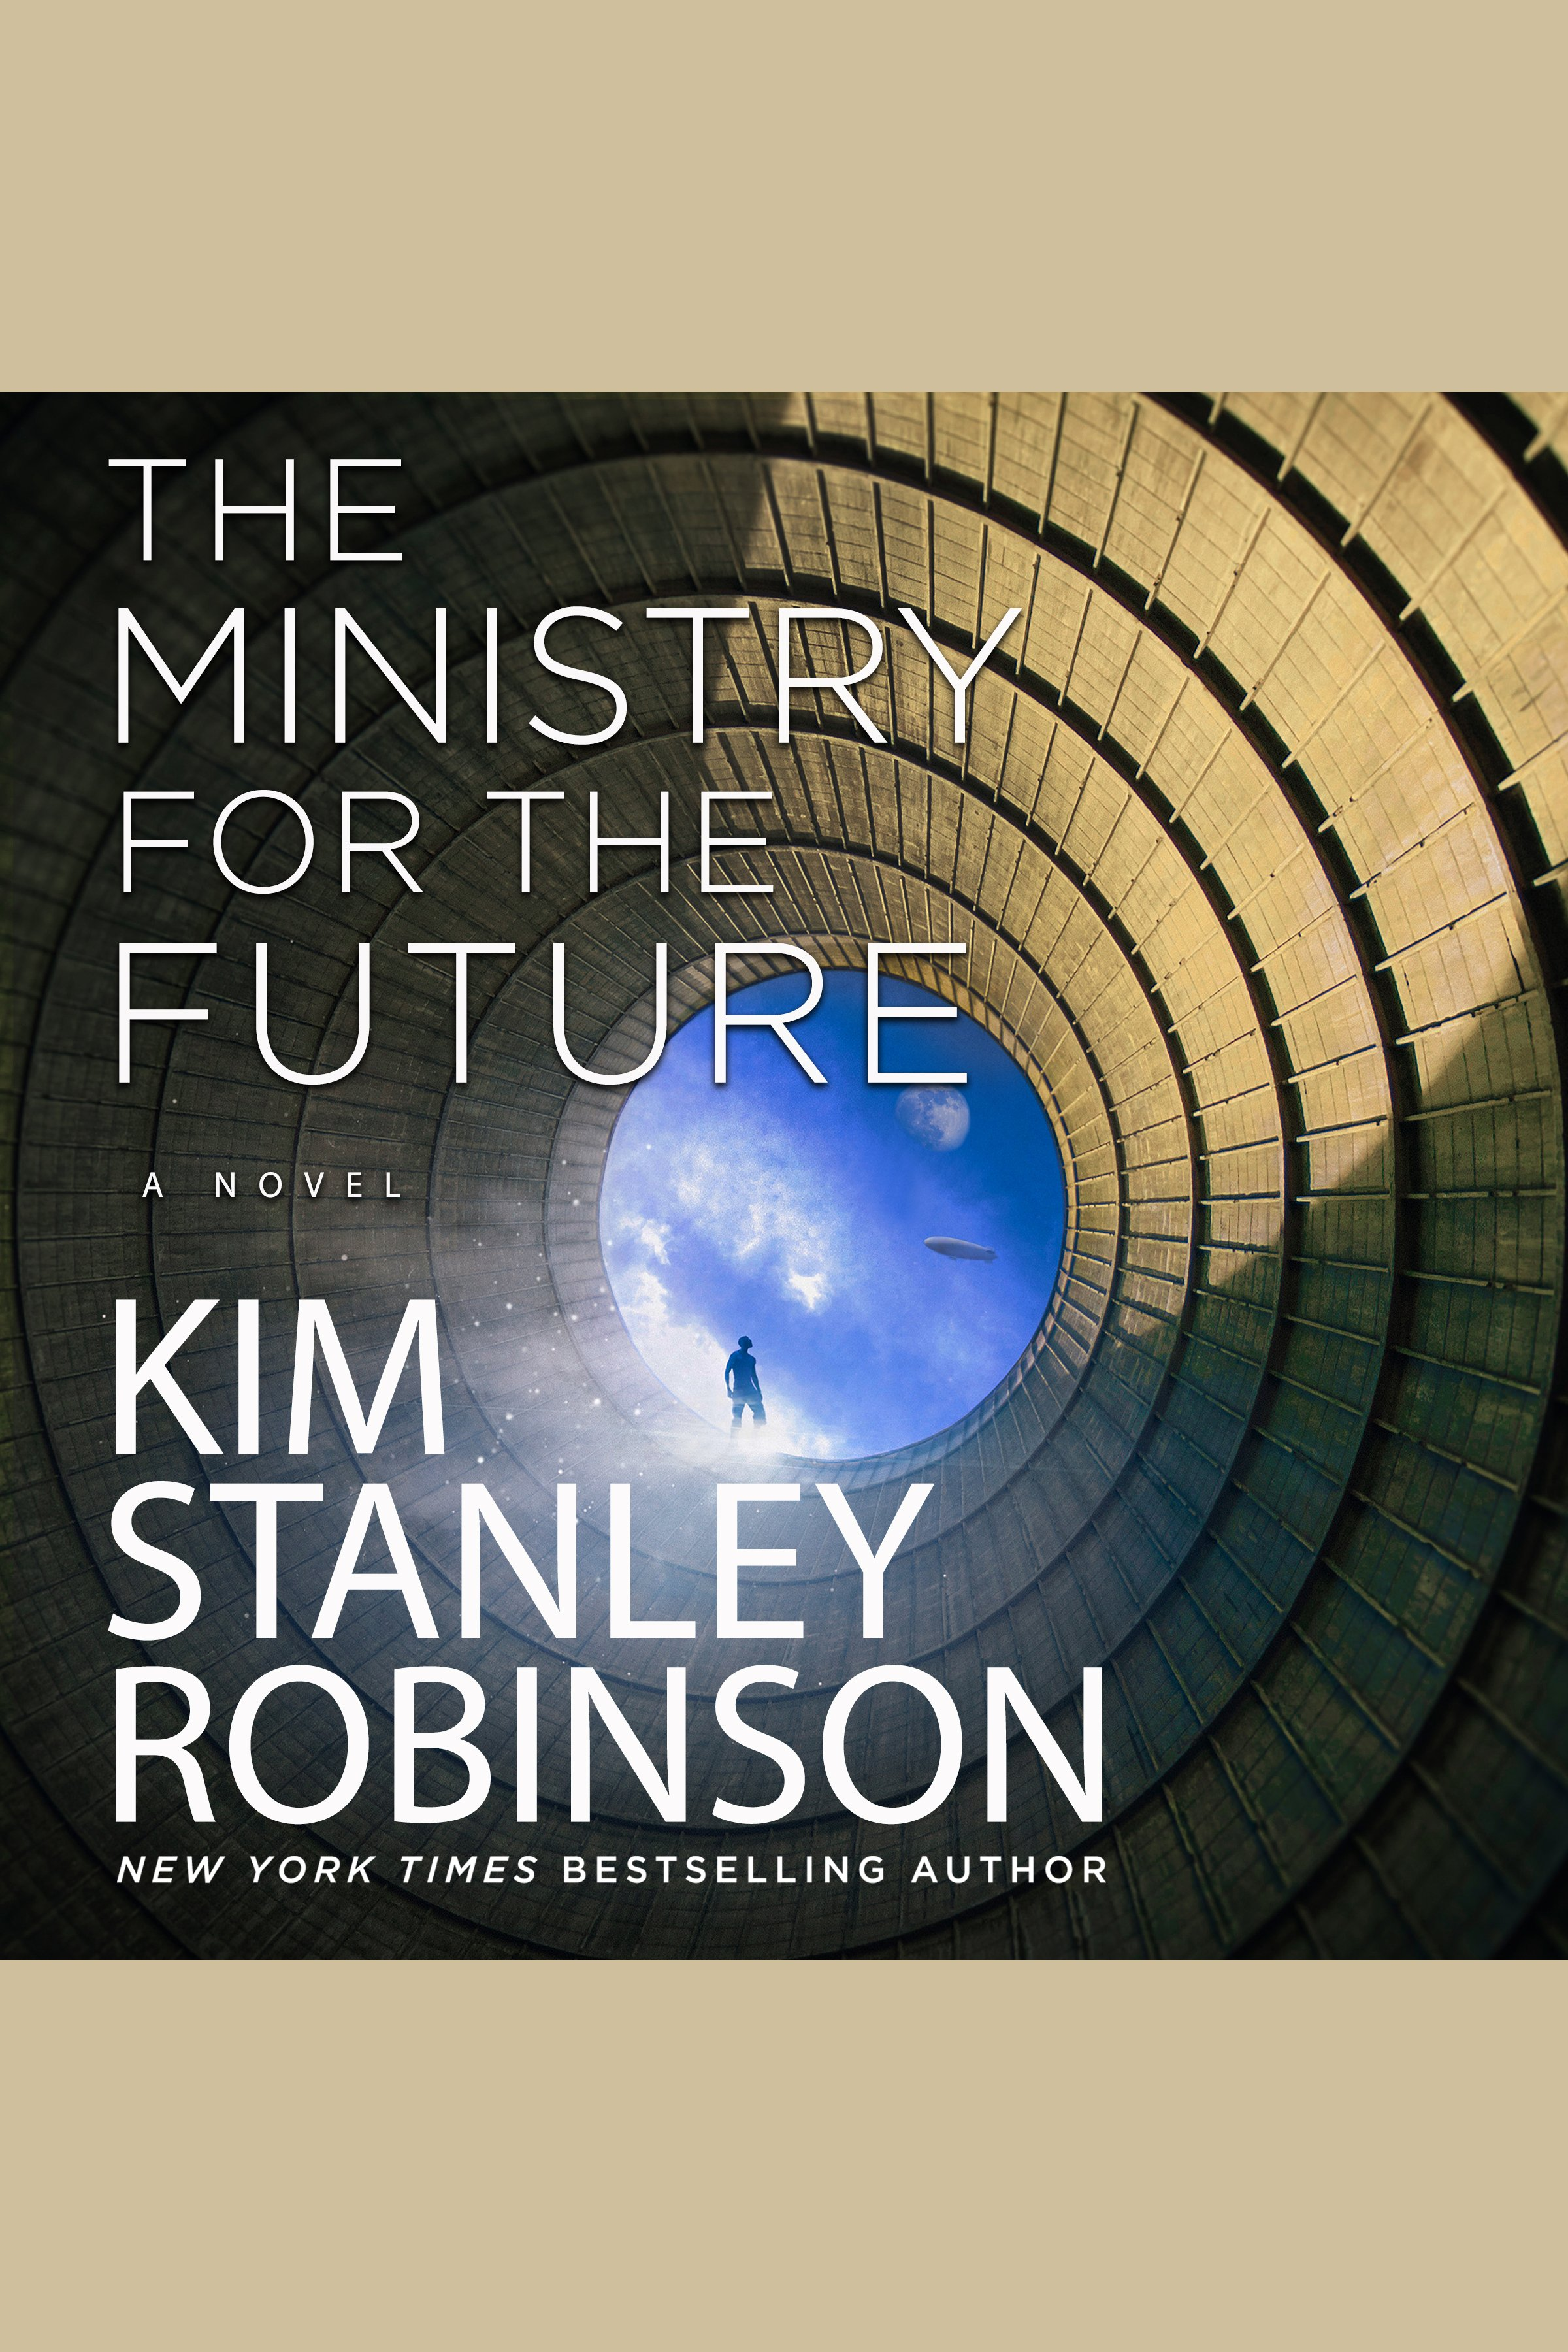 Cover Image of Ministry for the Future, The